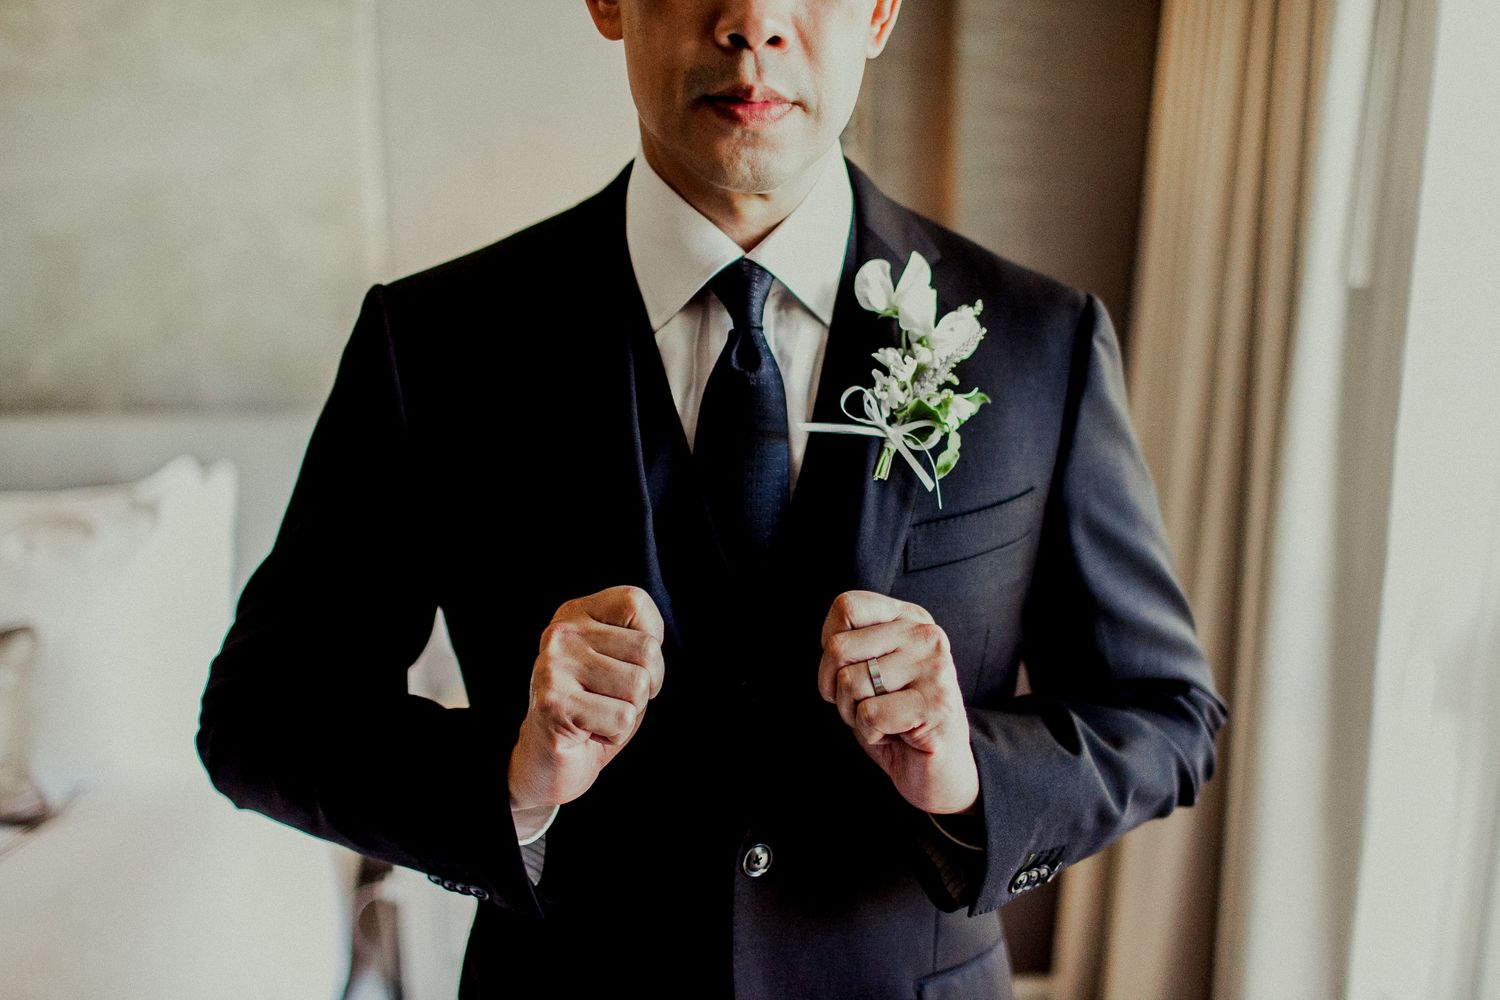 groom showing wedding ring and suit